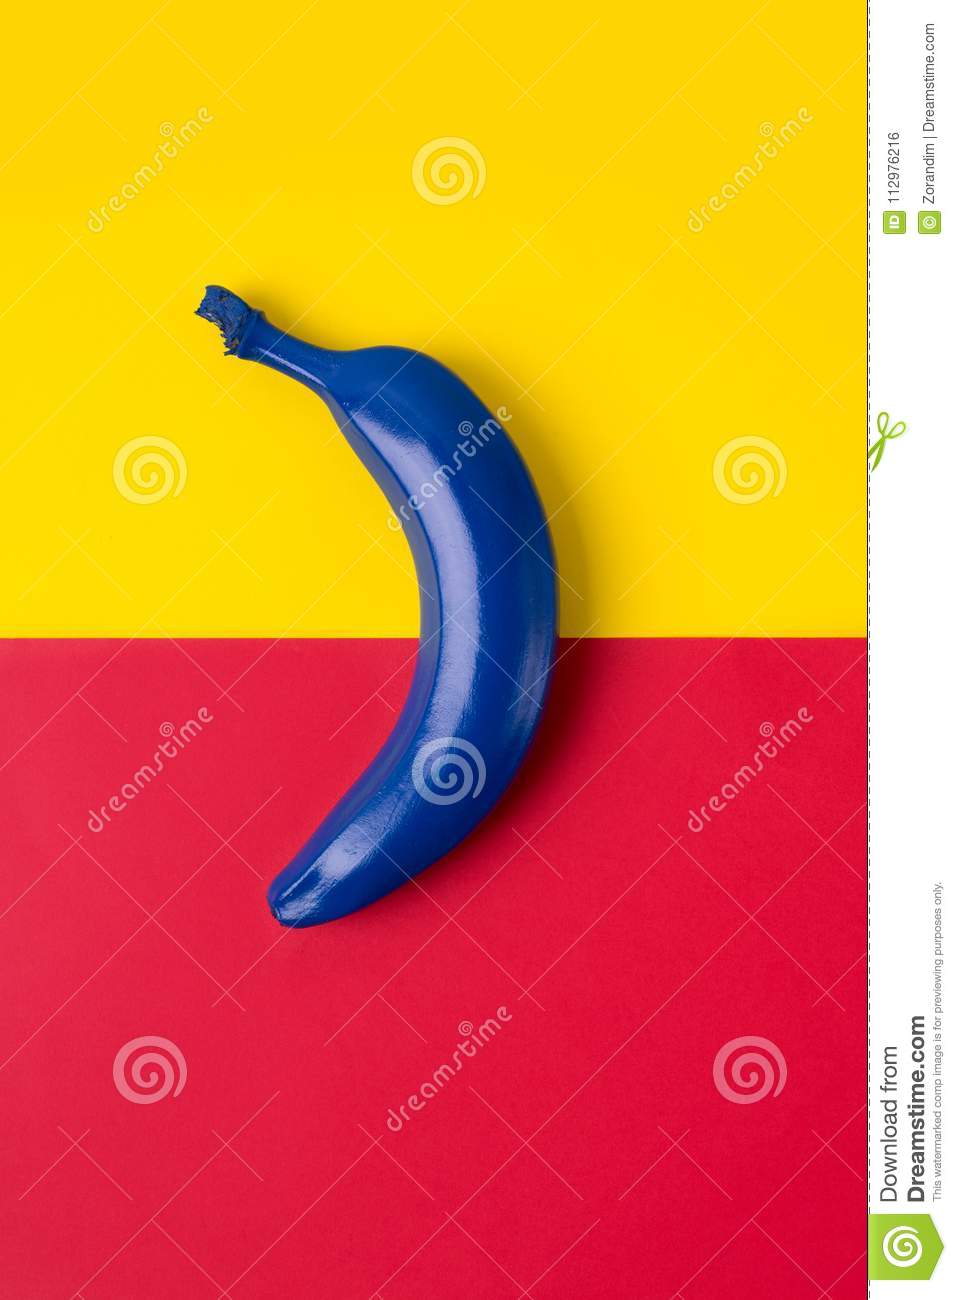 Blue banana on the bright background of red and yellow colors. Top view image